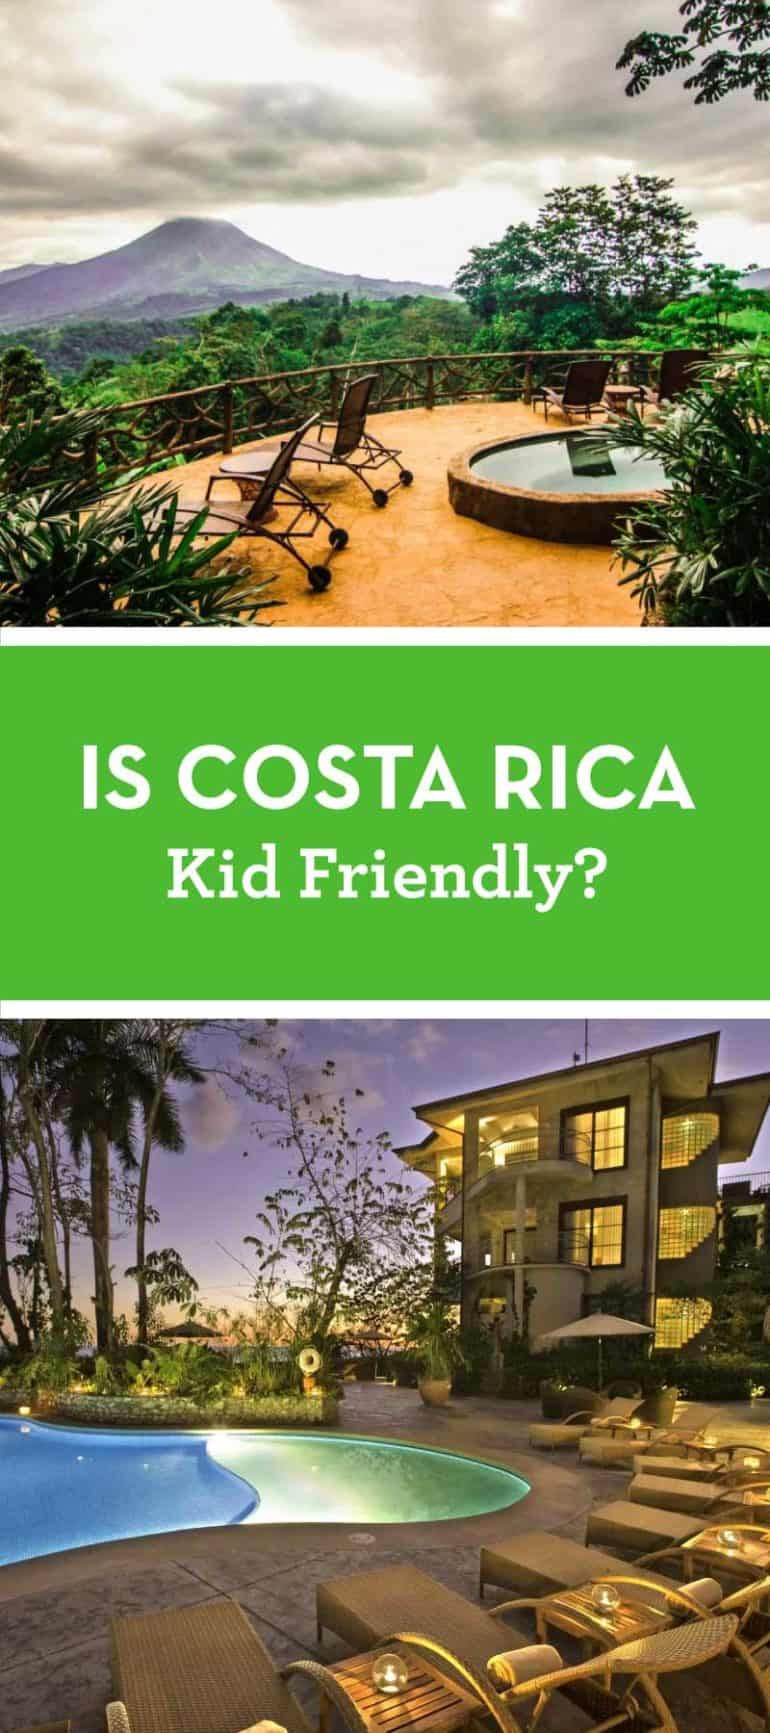 Thinking about taking your family to Costa Rica? Here's what I thought about our trip